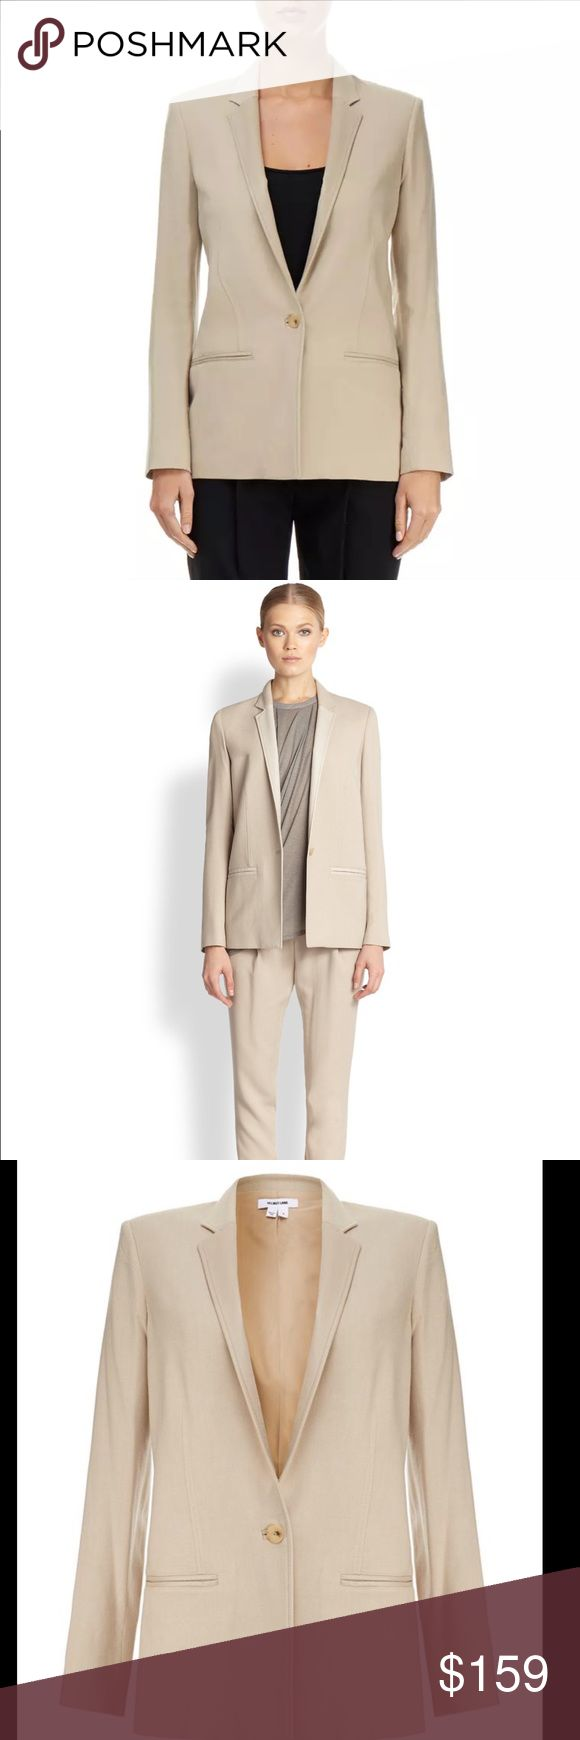 """HELMUT LANG BLAZER This blazer is beautiful! Information above. In new condition. No holes, stains, etc. Originally price $715.00. Length 27"""", arms 24.5"""". Helmut Lang Jackets & Coats Blazers"""